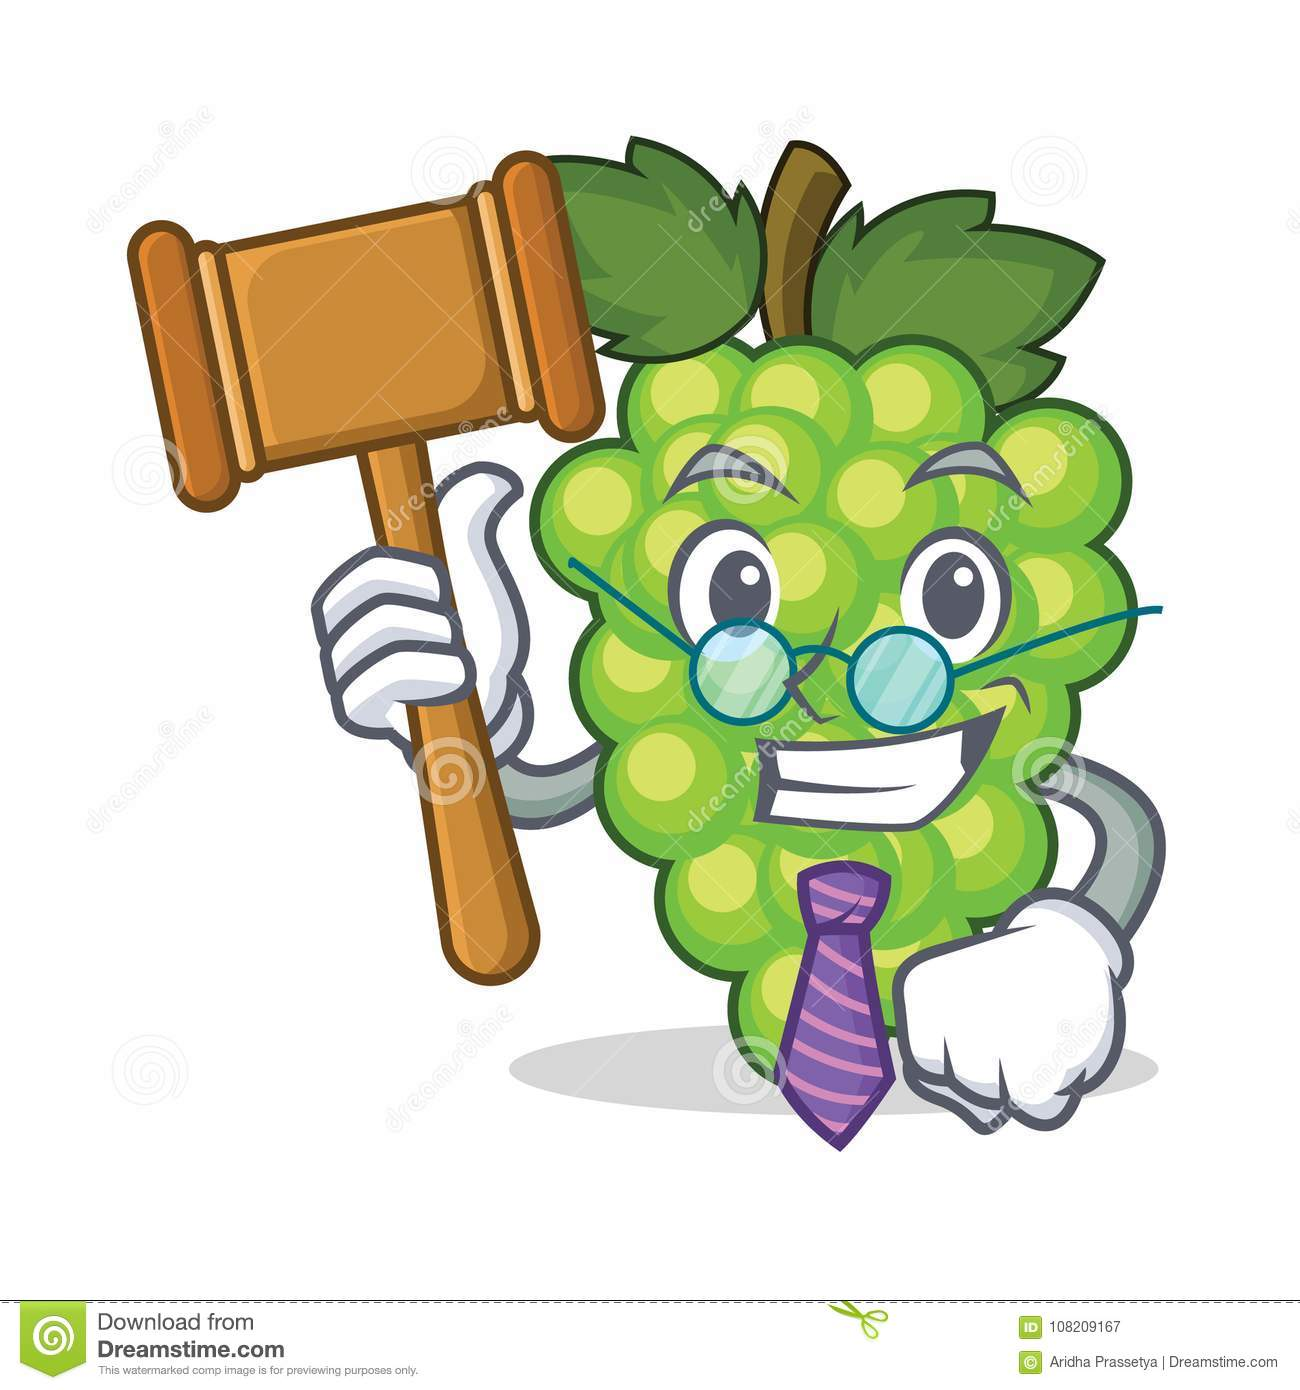 Judge green grapes mascot cartoon